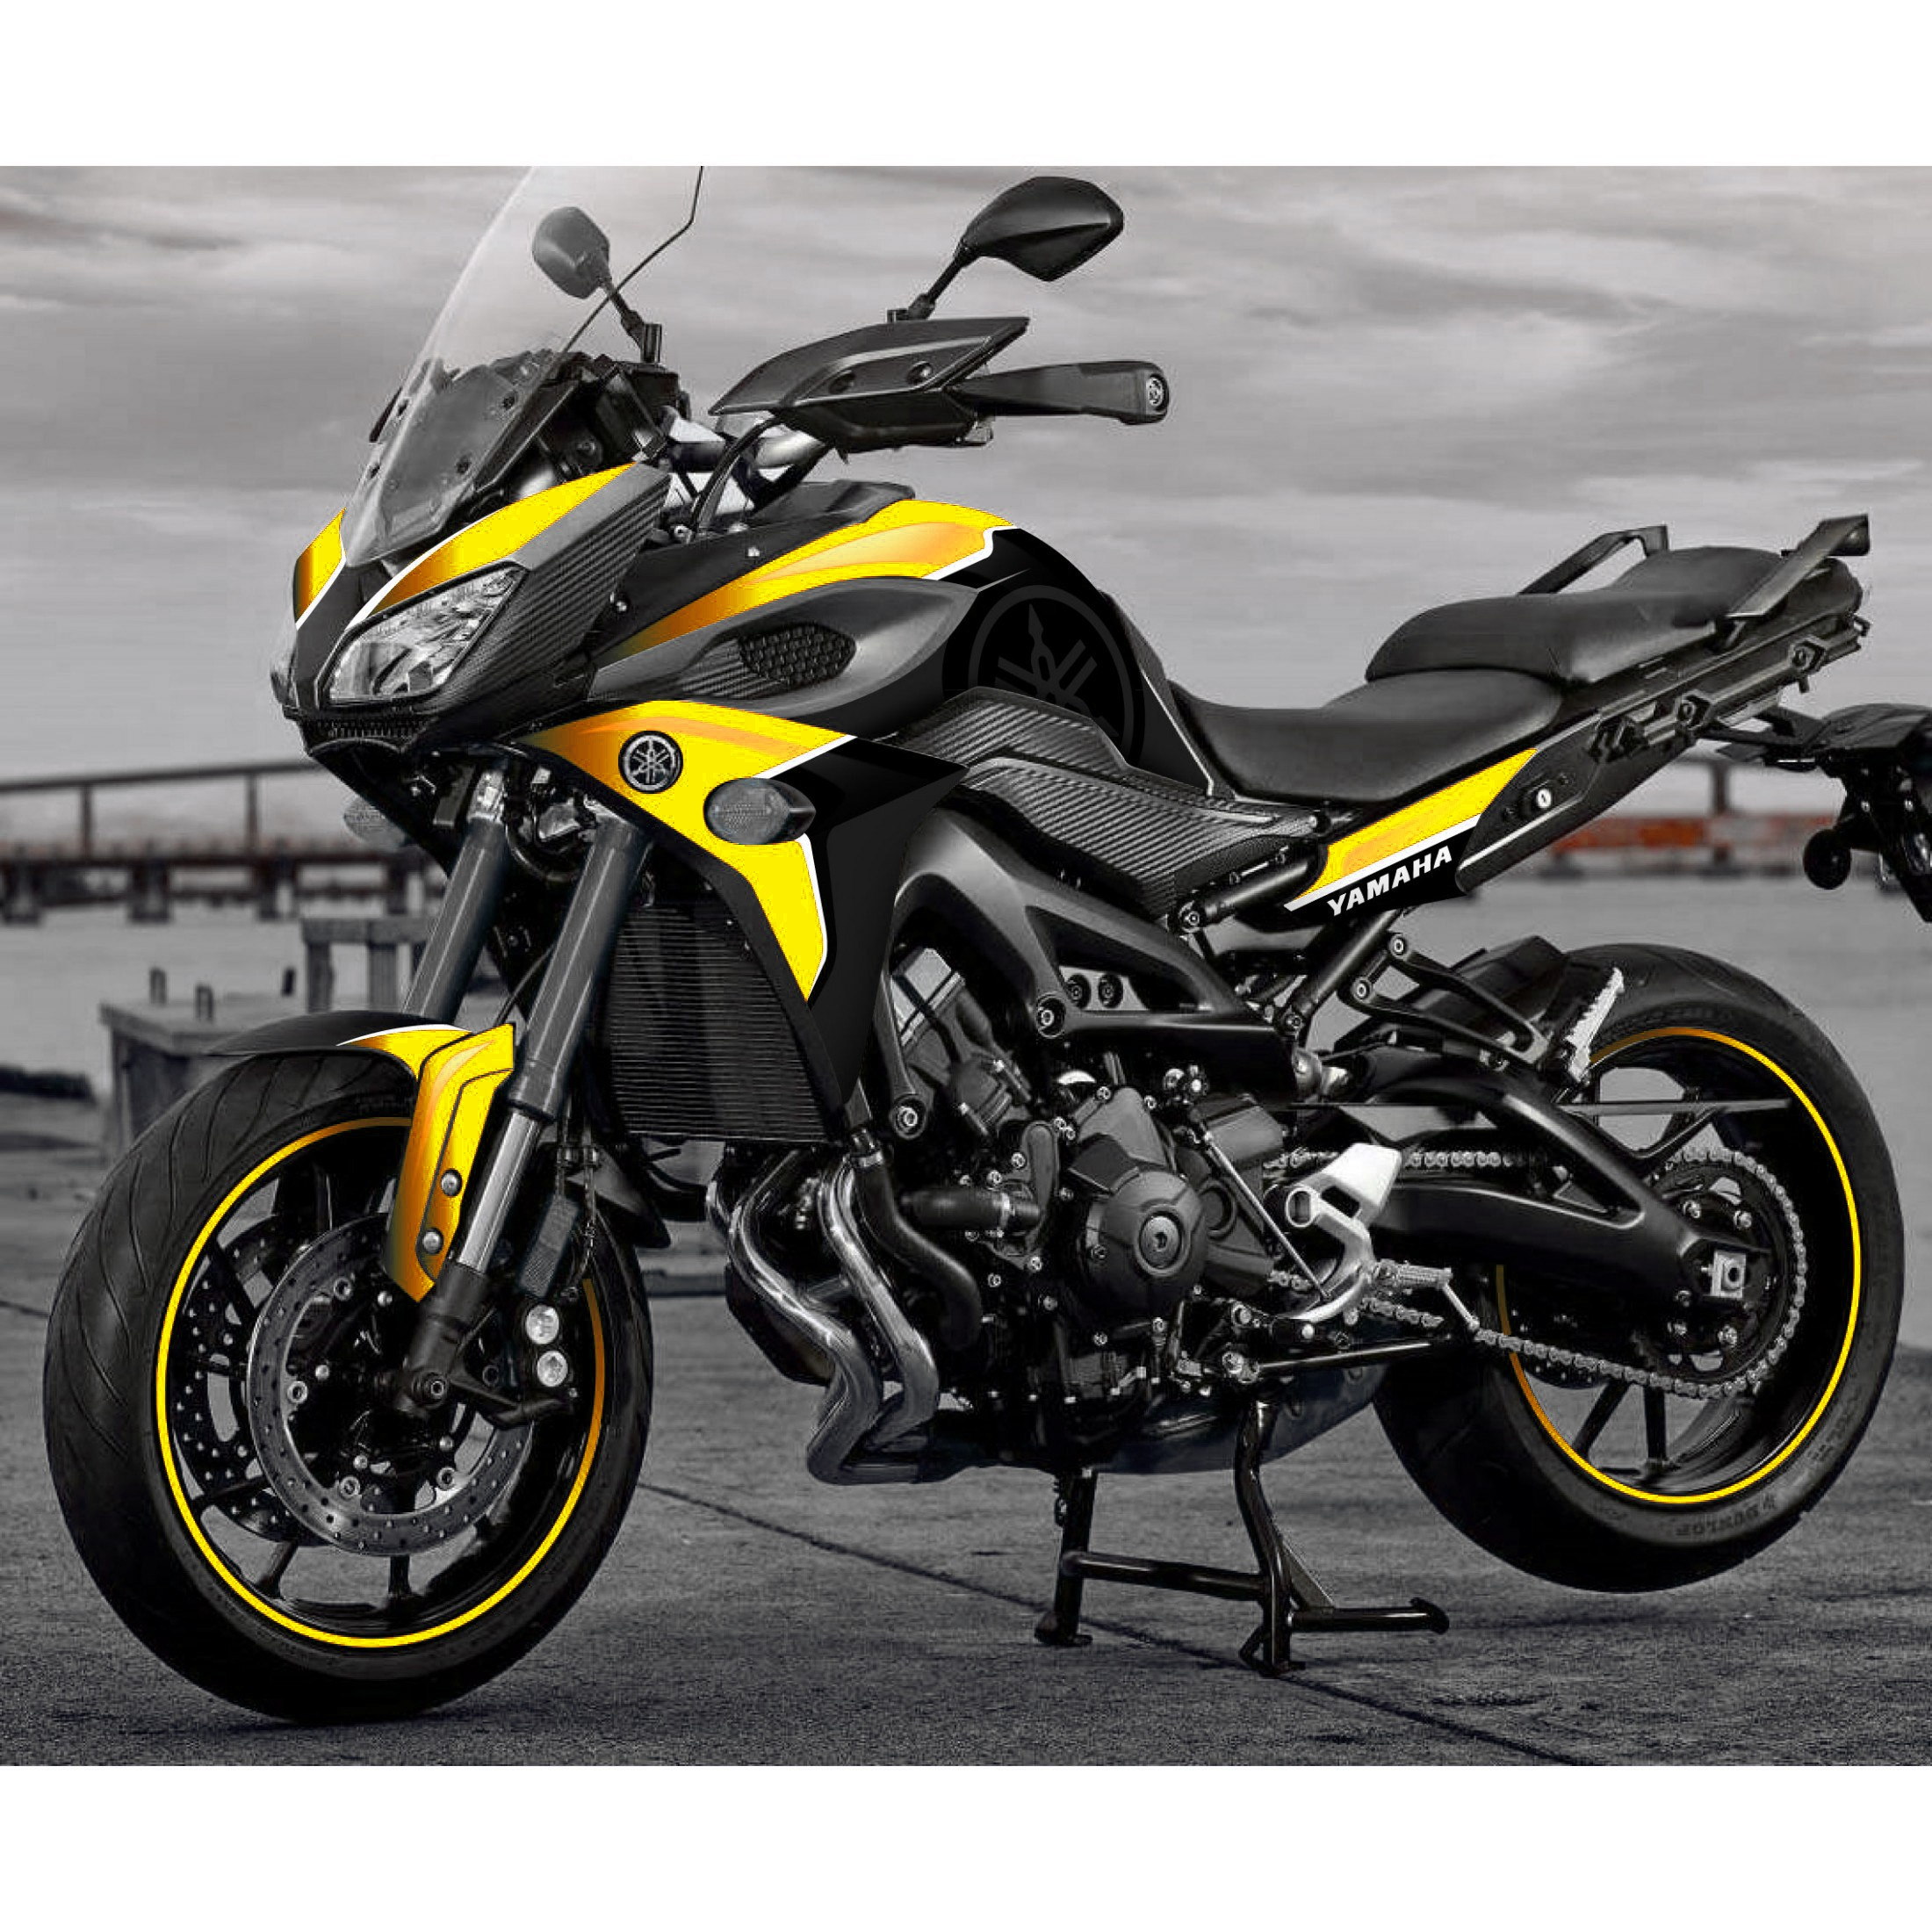 kit d coration yellow edition yamaha mt 09 tracer. Black Bedroom Furniture Sets. Home Design Ideas